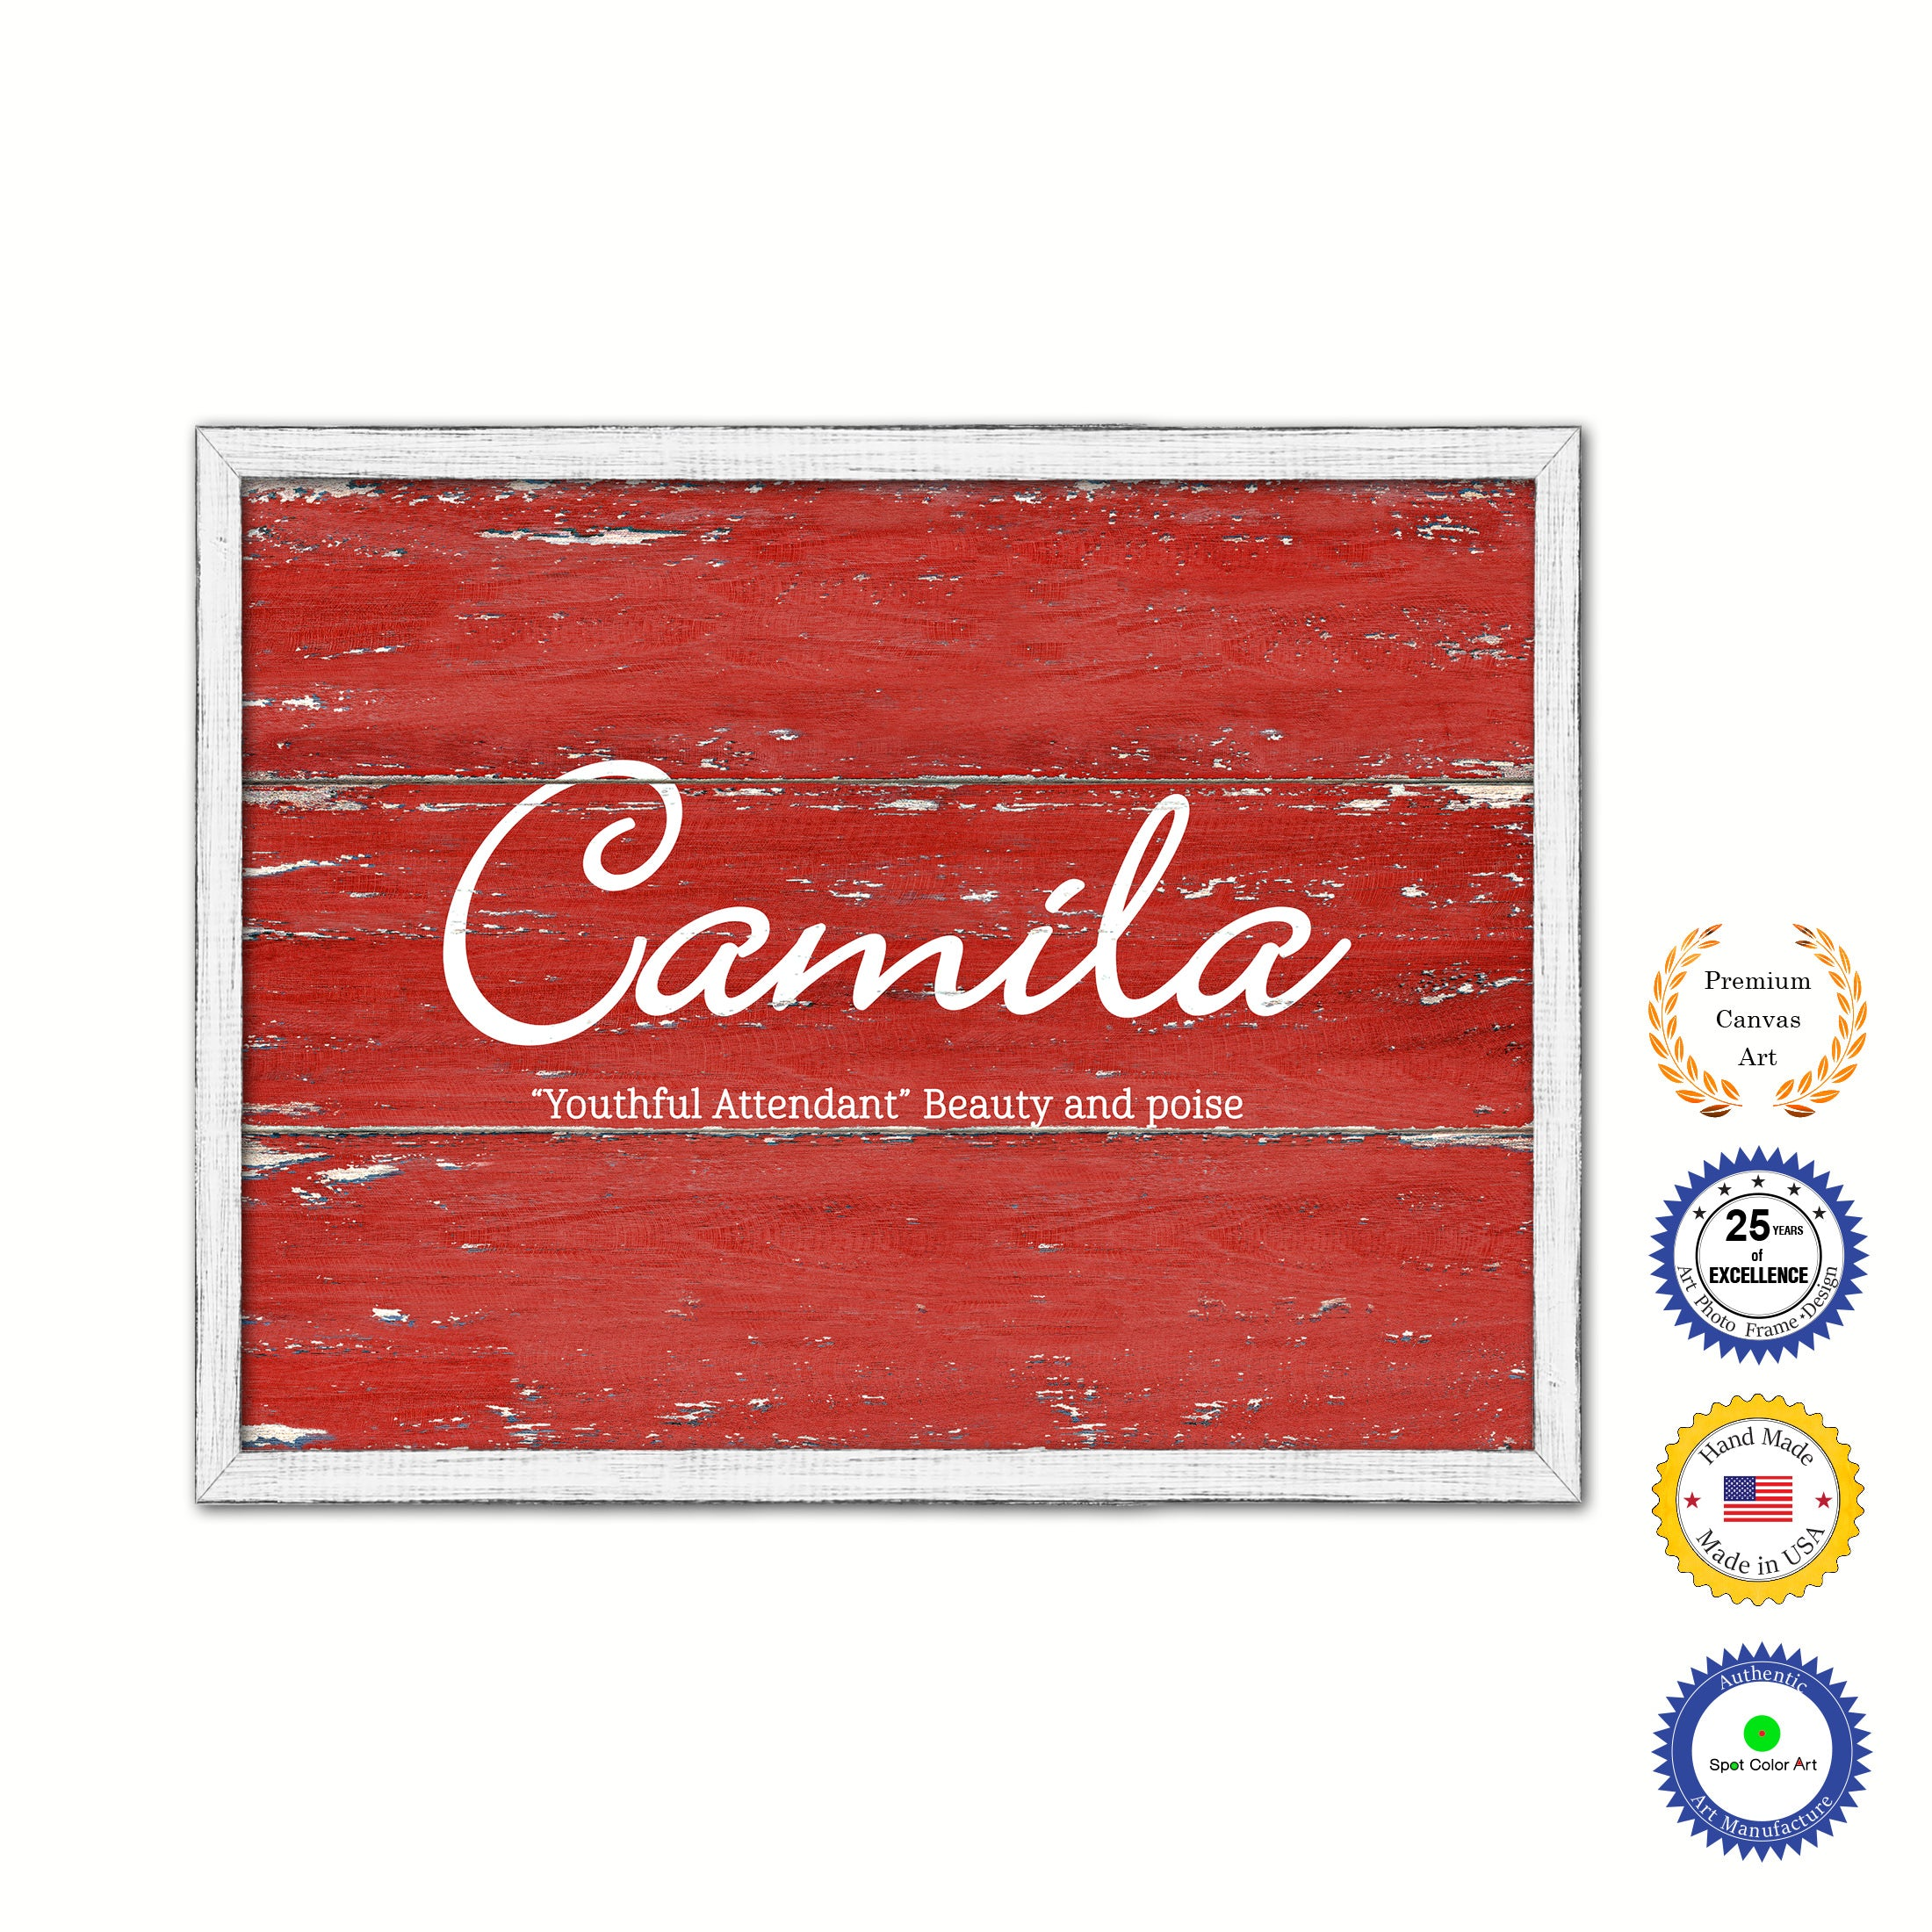 Marvelous Camila Name Plate White Wash Wood Frame Canvas Print Boutique Cottage Decor Shabby Chic Download Free Architecture Designs Intelgarnamadebymaigaardcom